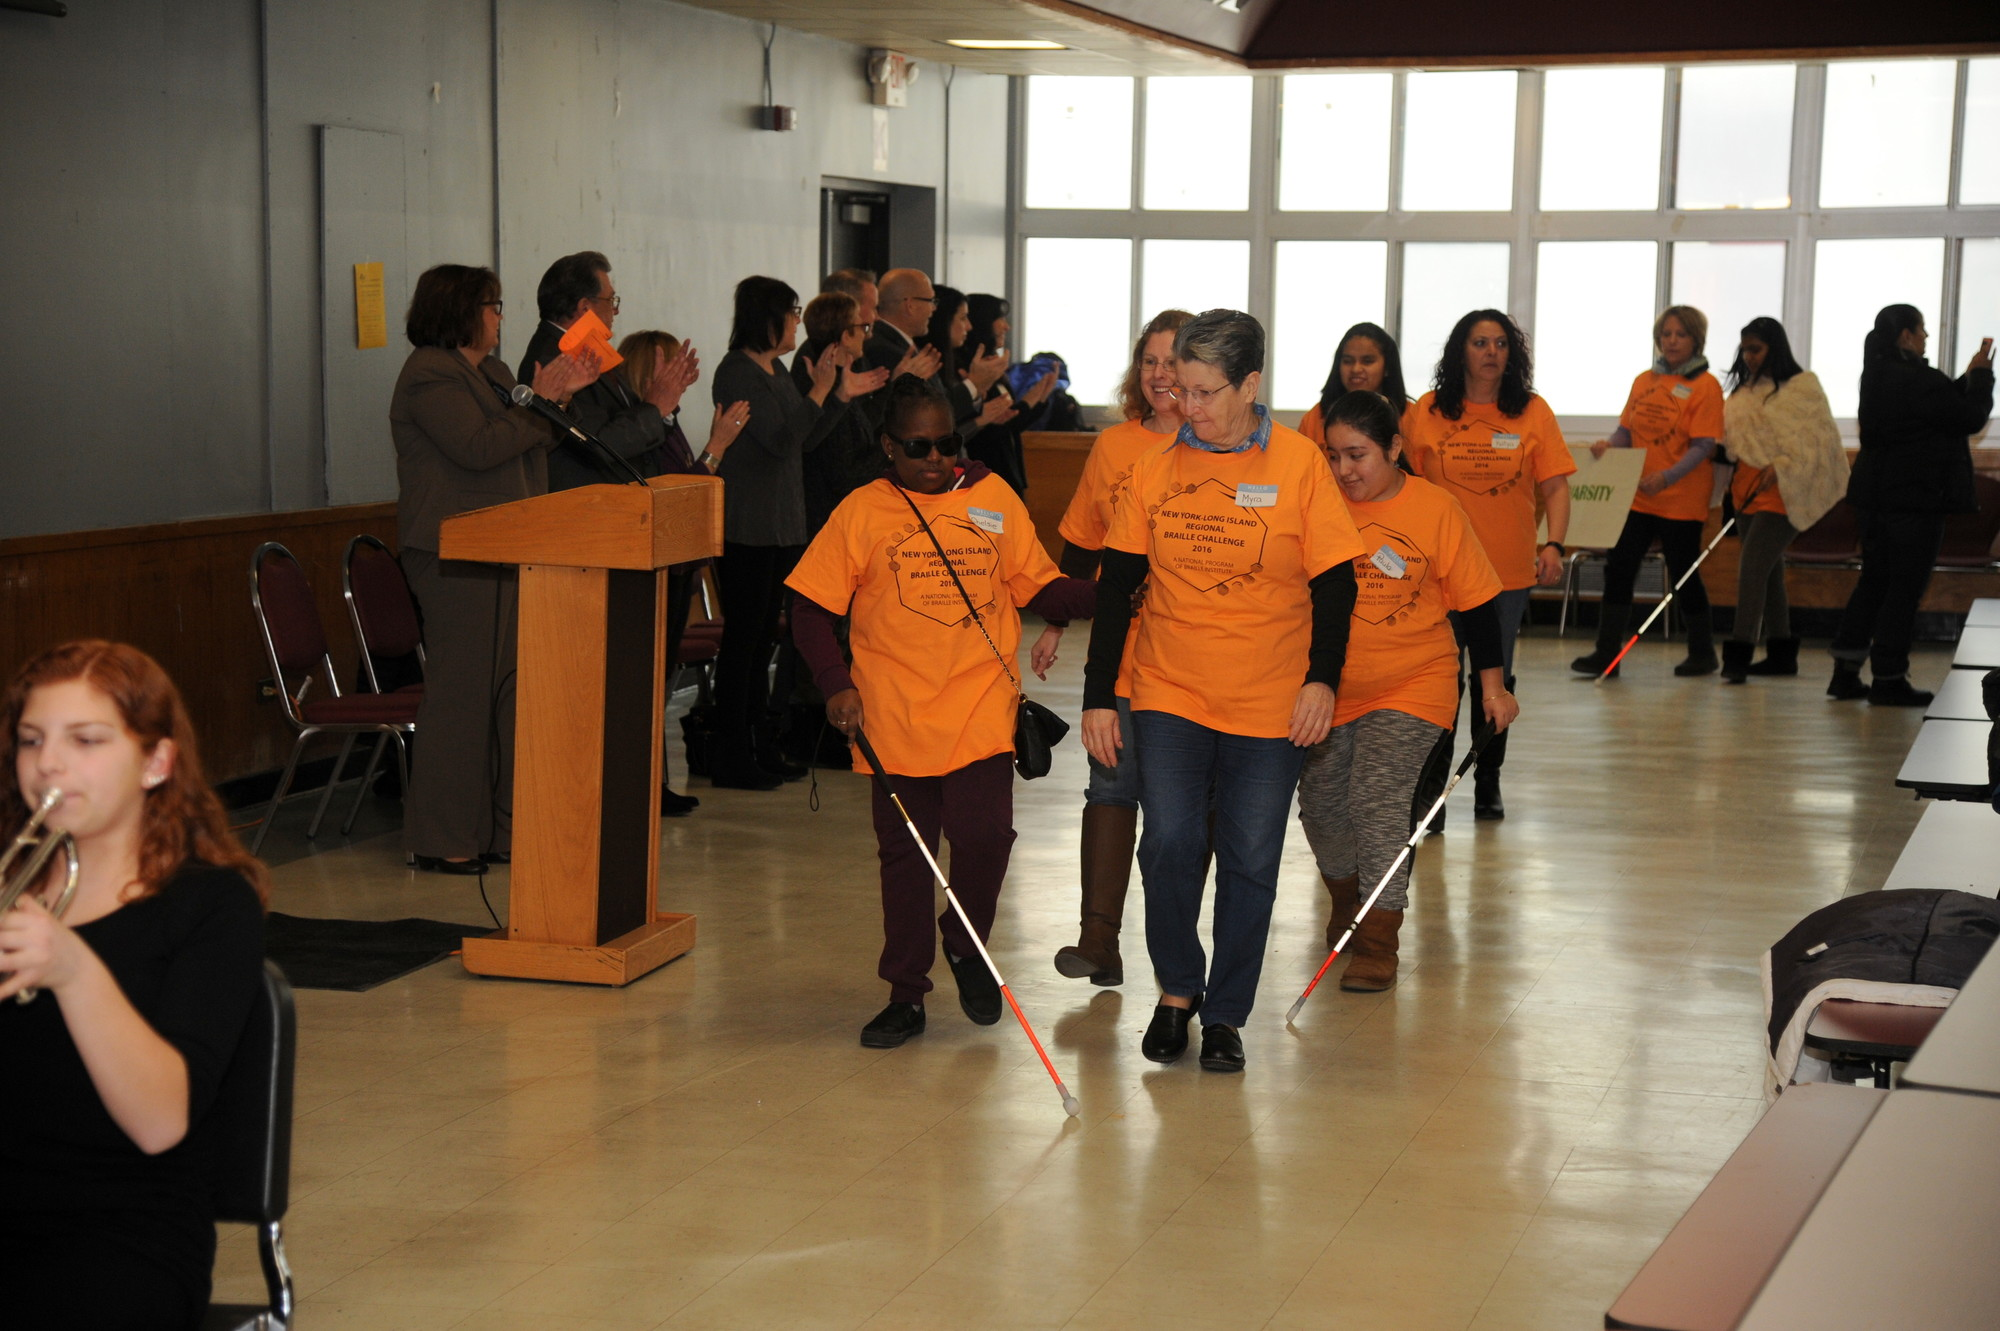 About 15 students marched into the Clarke cafeteria, ready to test their skills.